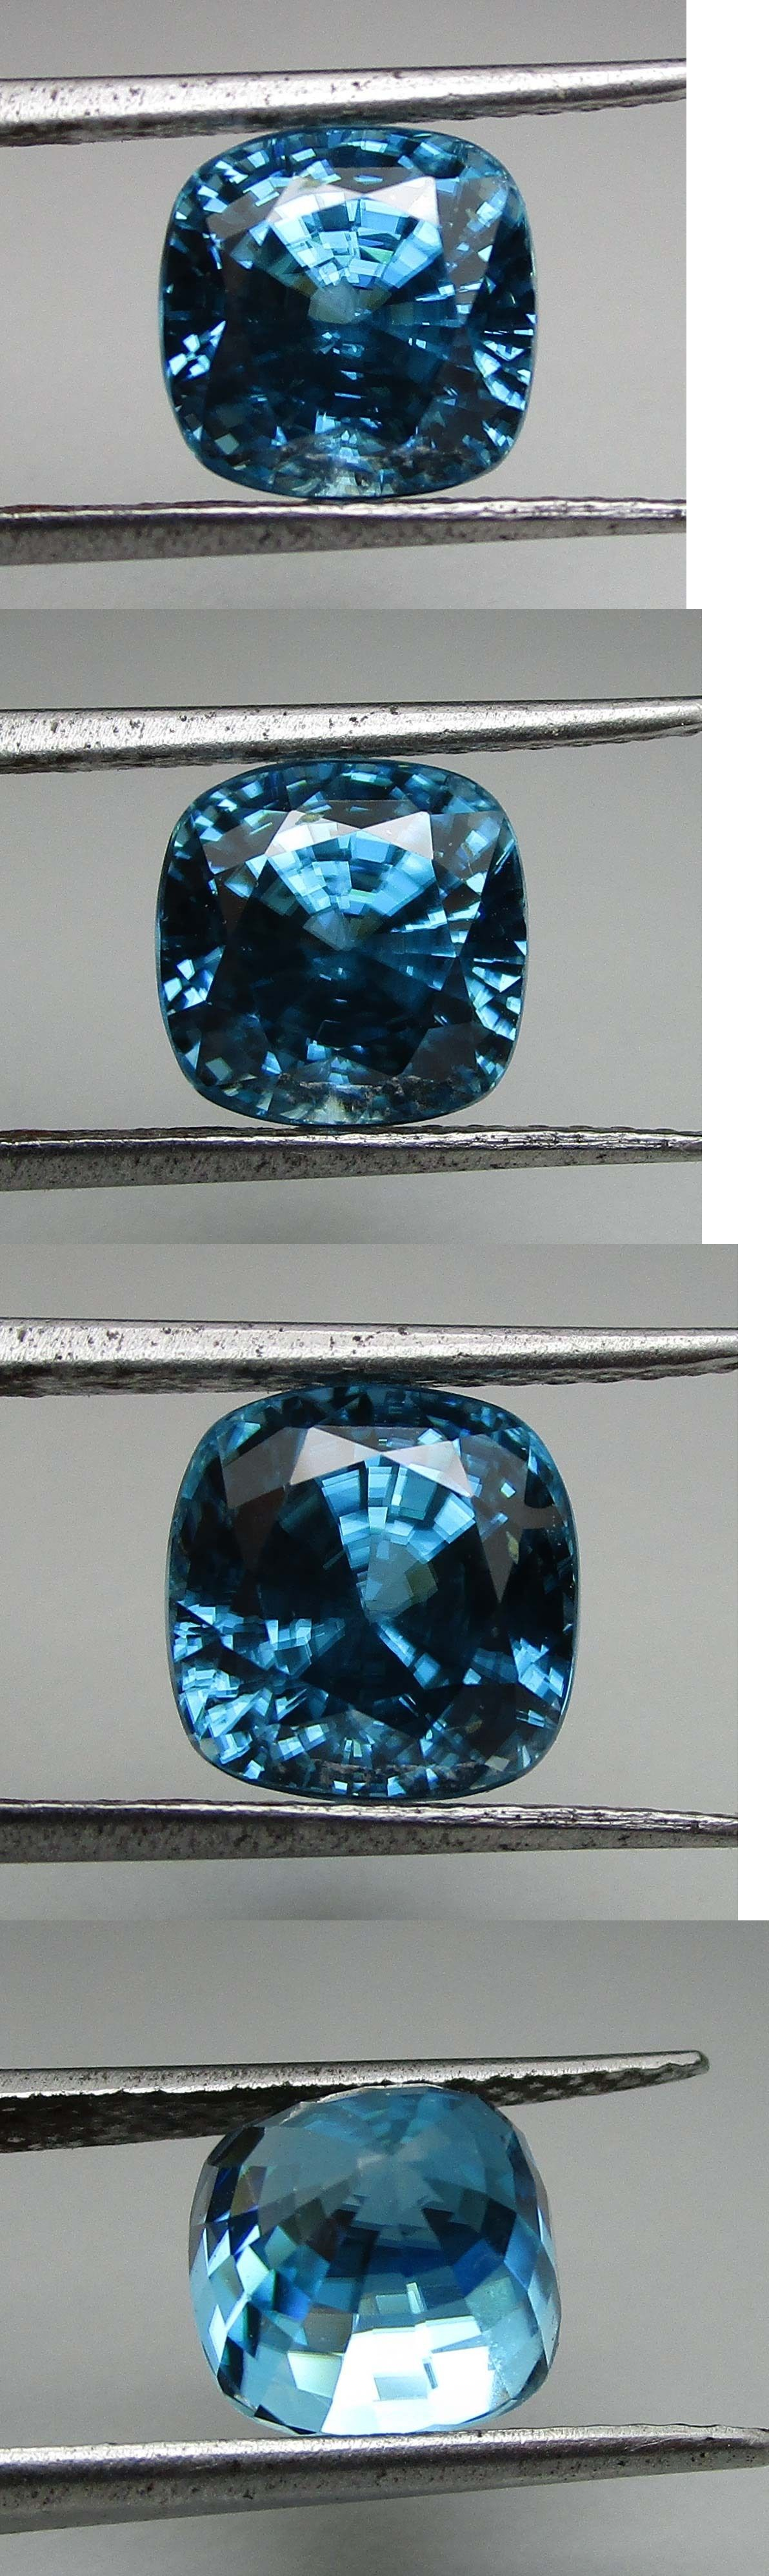 Zircon 10286: 9.11Ct Vvs Cushion Nice Natural Fire Blue Cambodian Zircon -> BUY IT NOW ONLY: $455.0 on eBay!